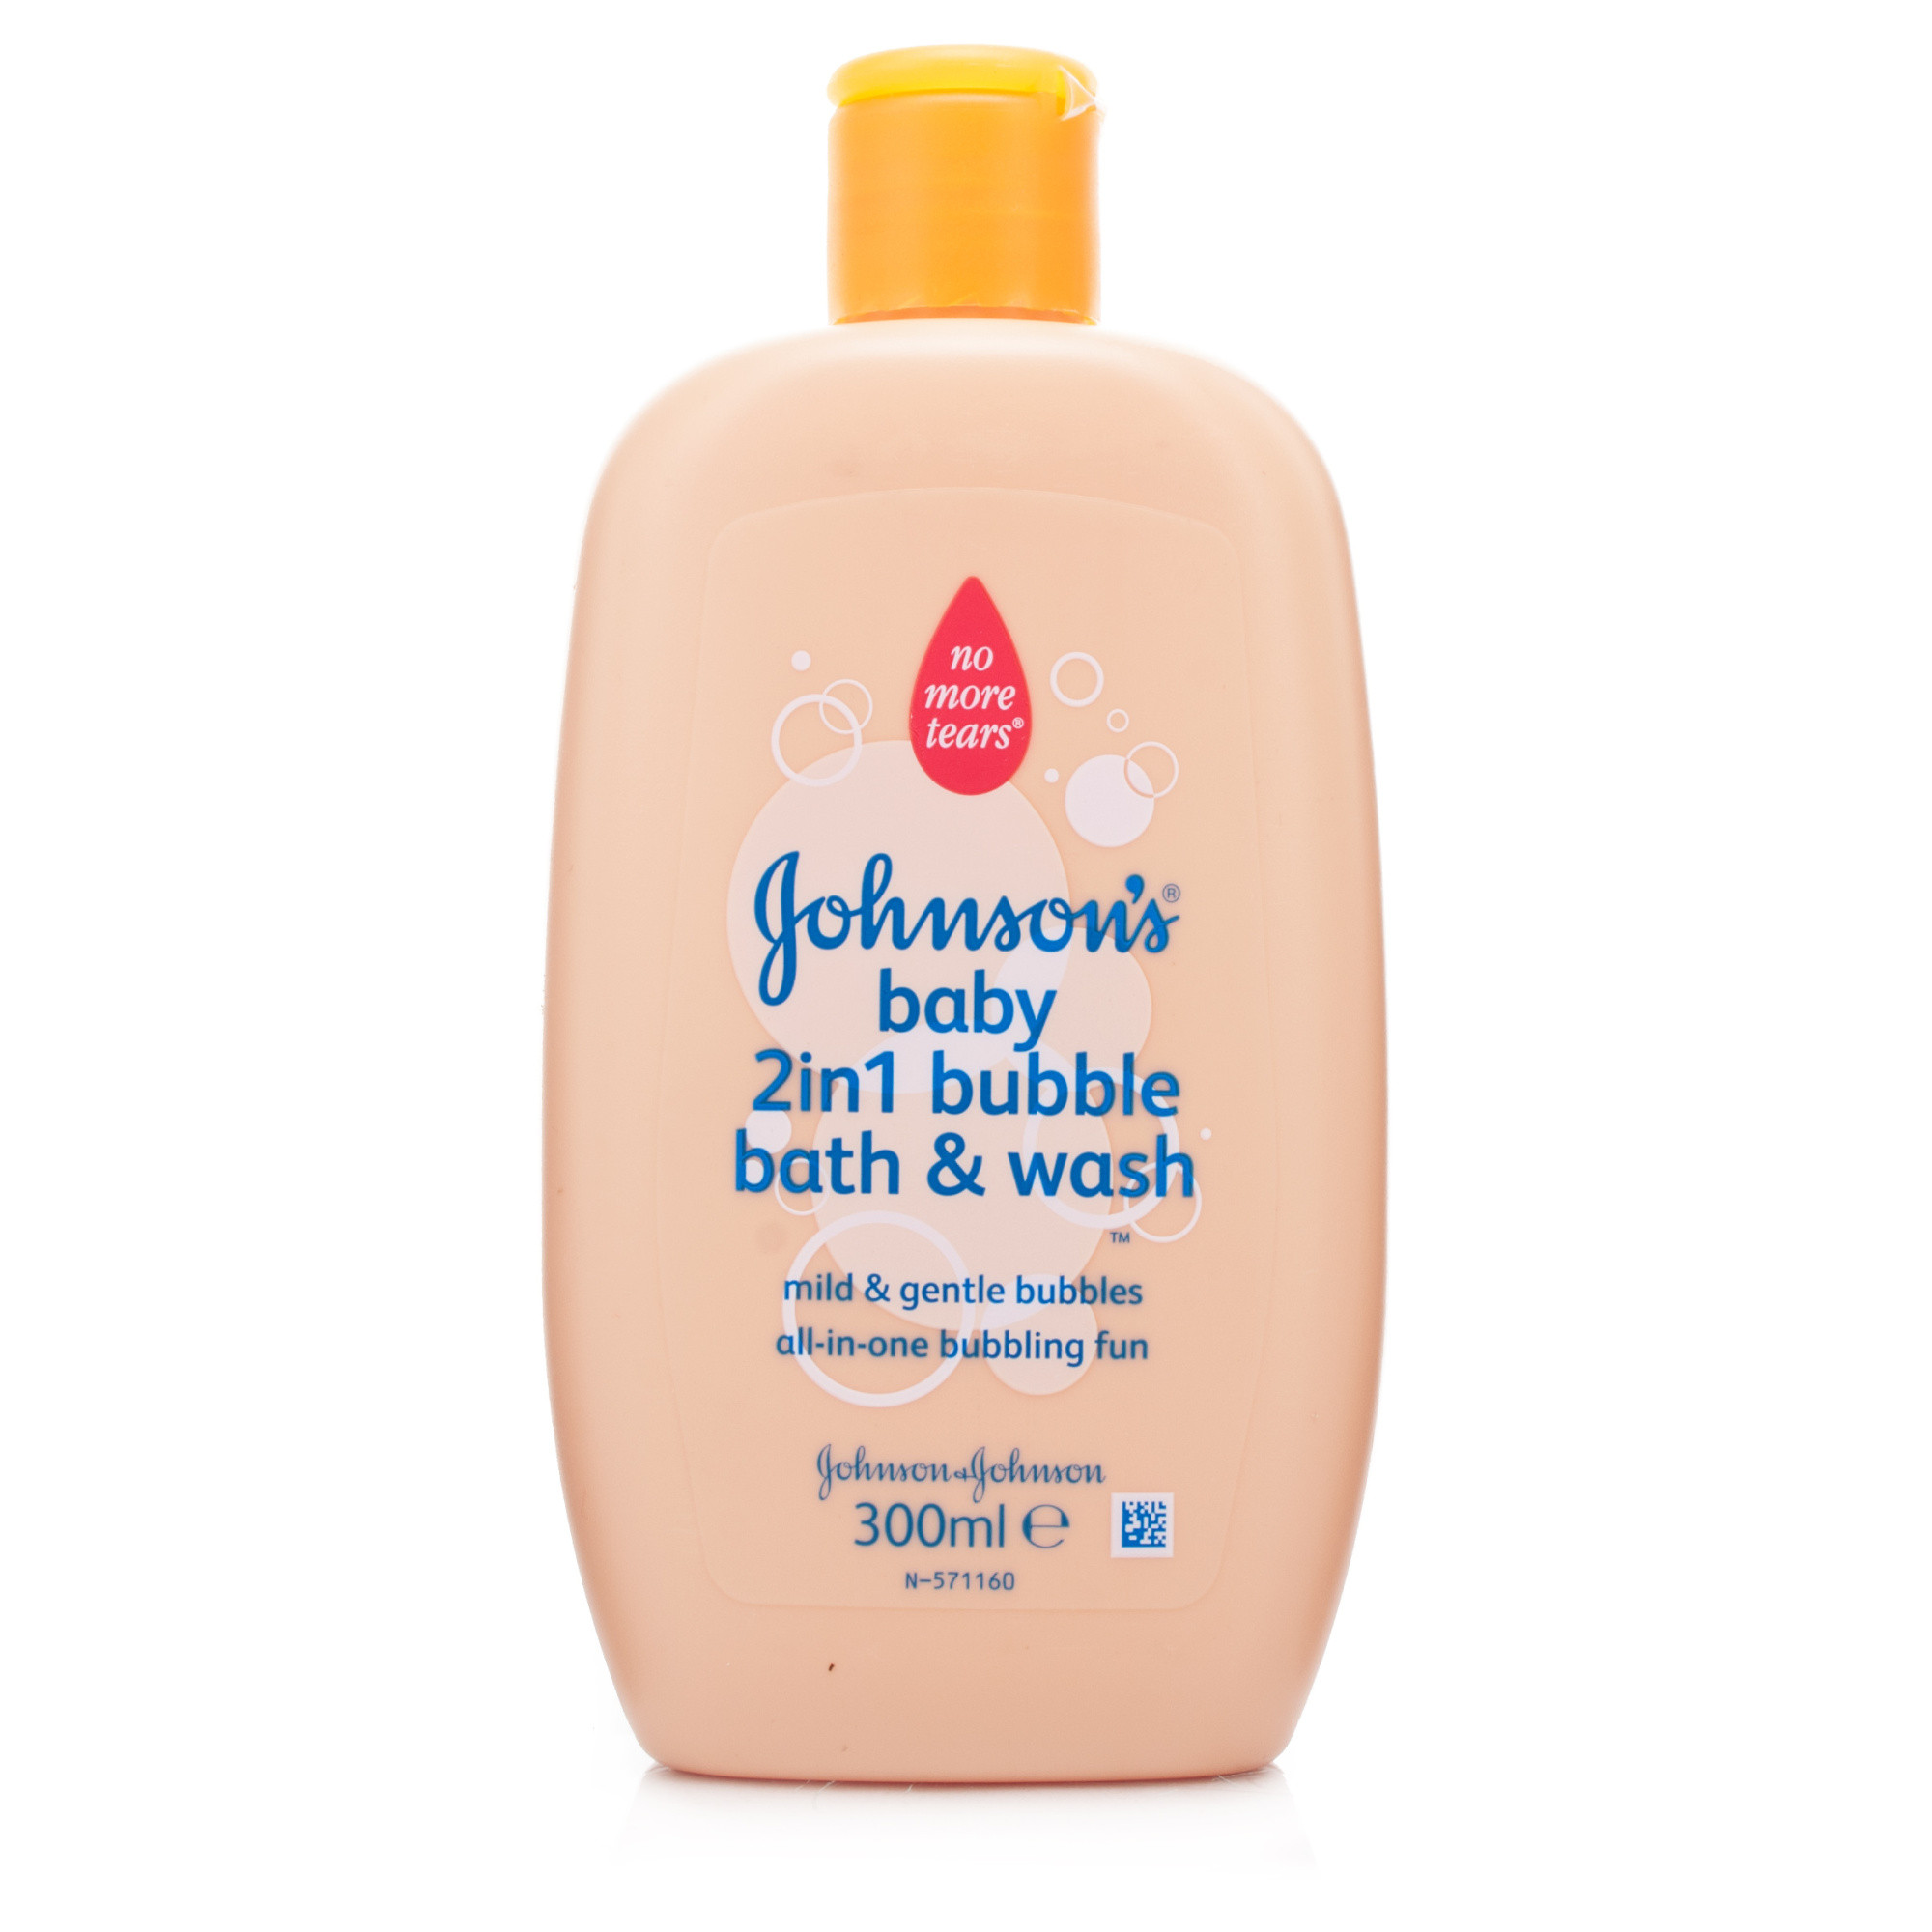 Johnson's Baby 2 in 1 Bubble Bath & Wash